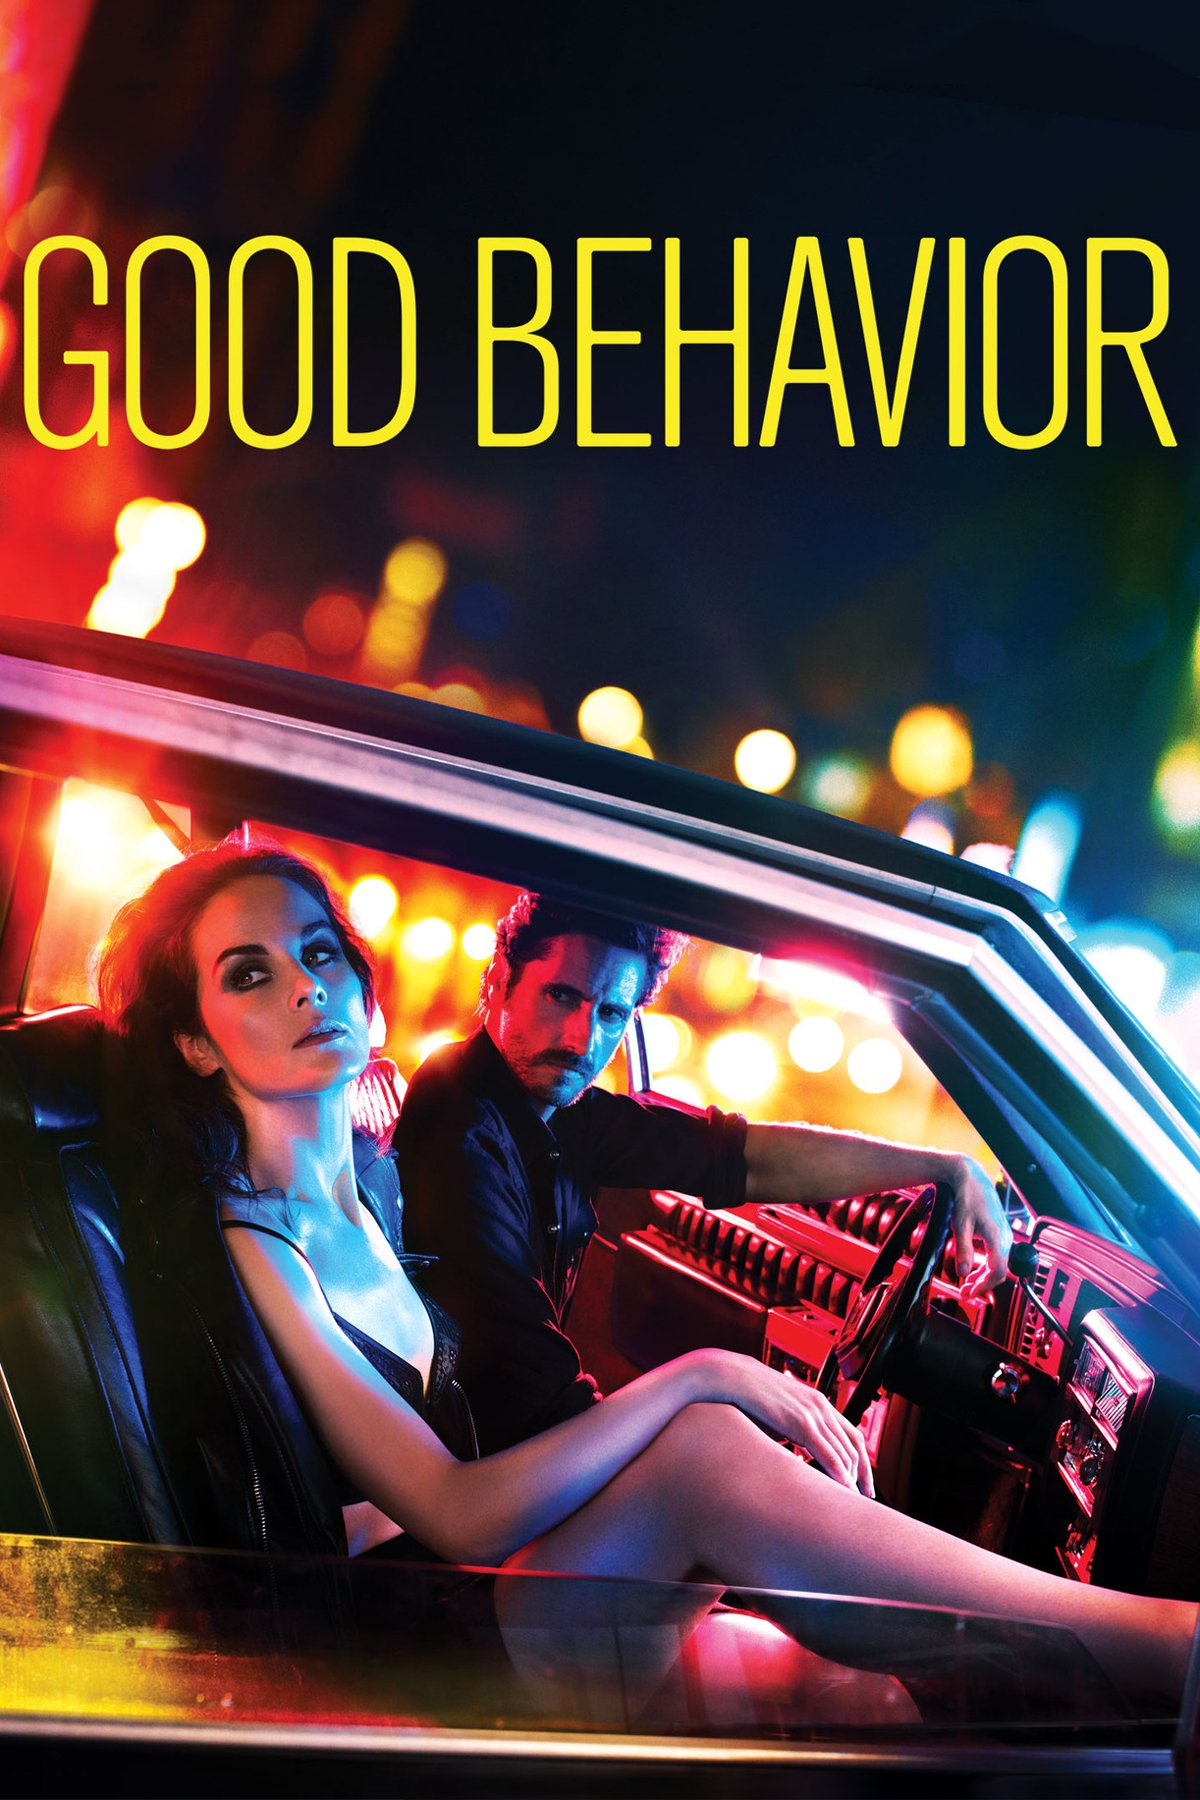 out on good behavior How do you get out of jail early on good behavior update cancel answer wiki 3 answers larry garrison, former purchasing manager, cost anaylist, now retired.